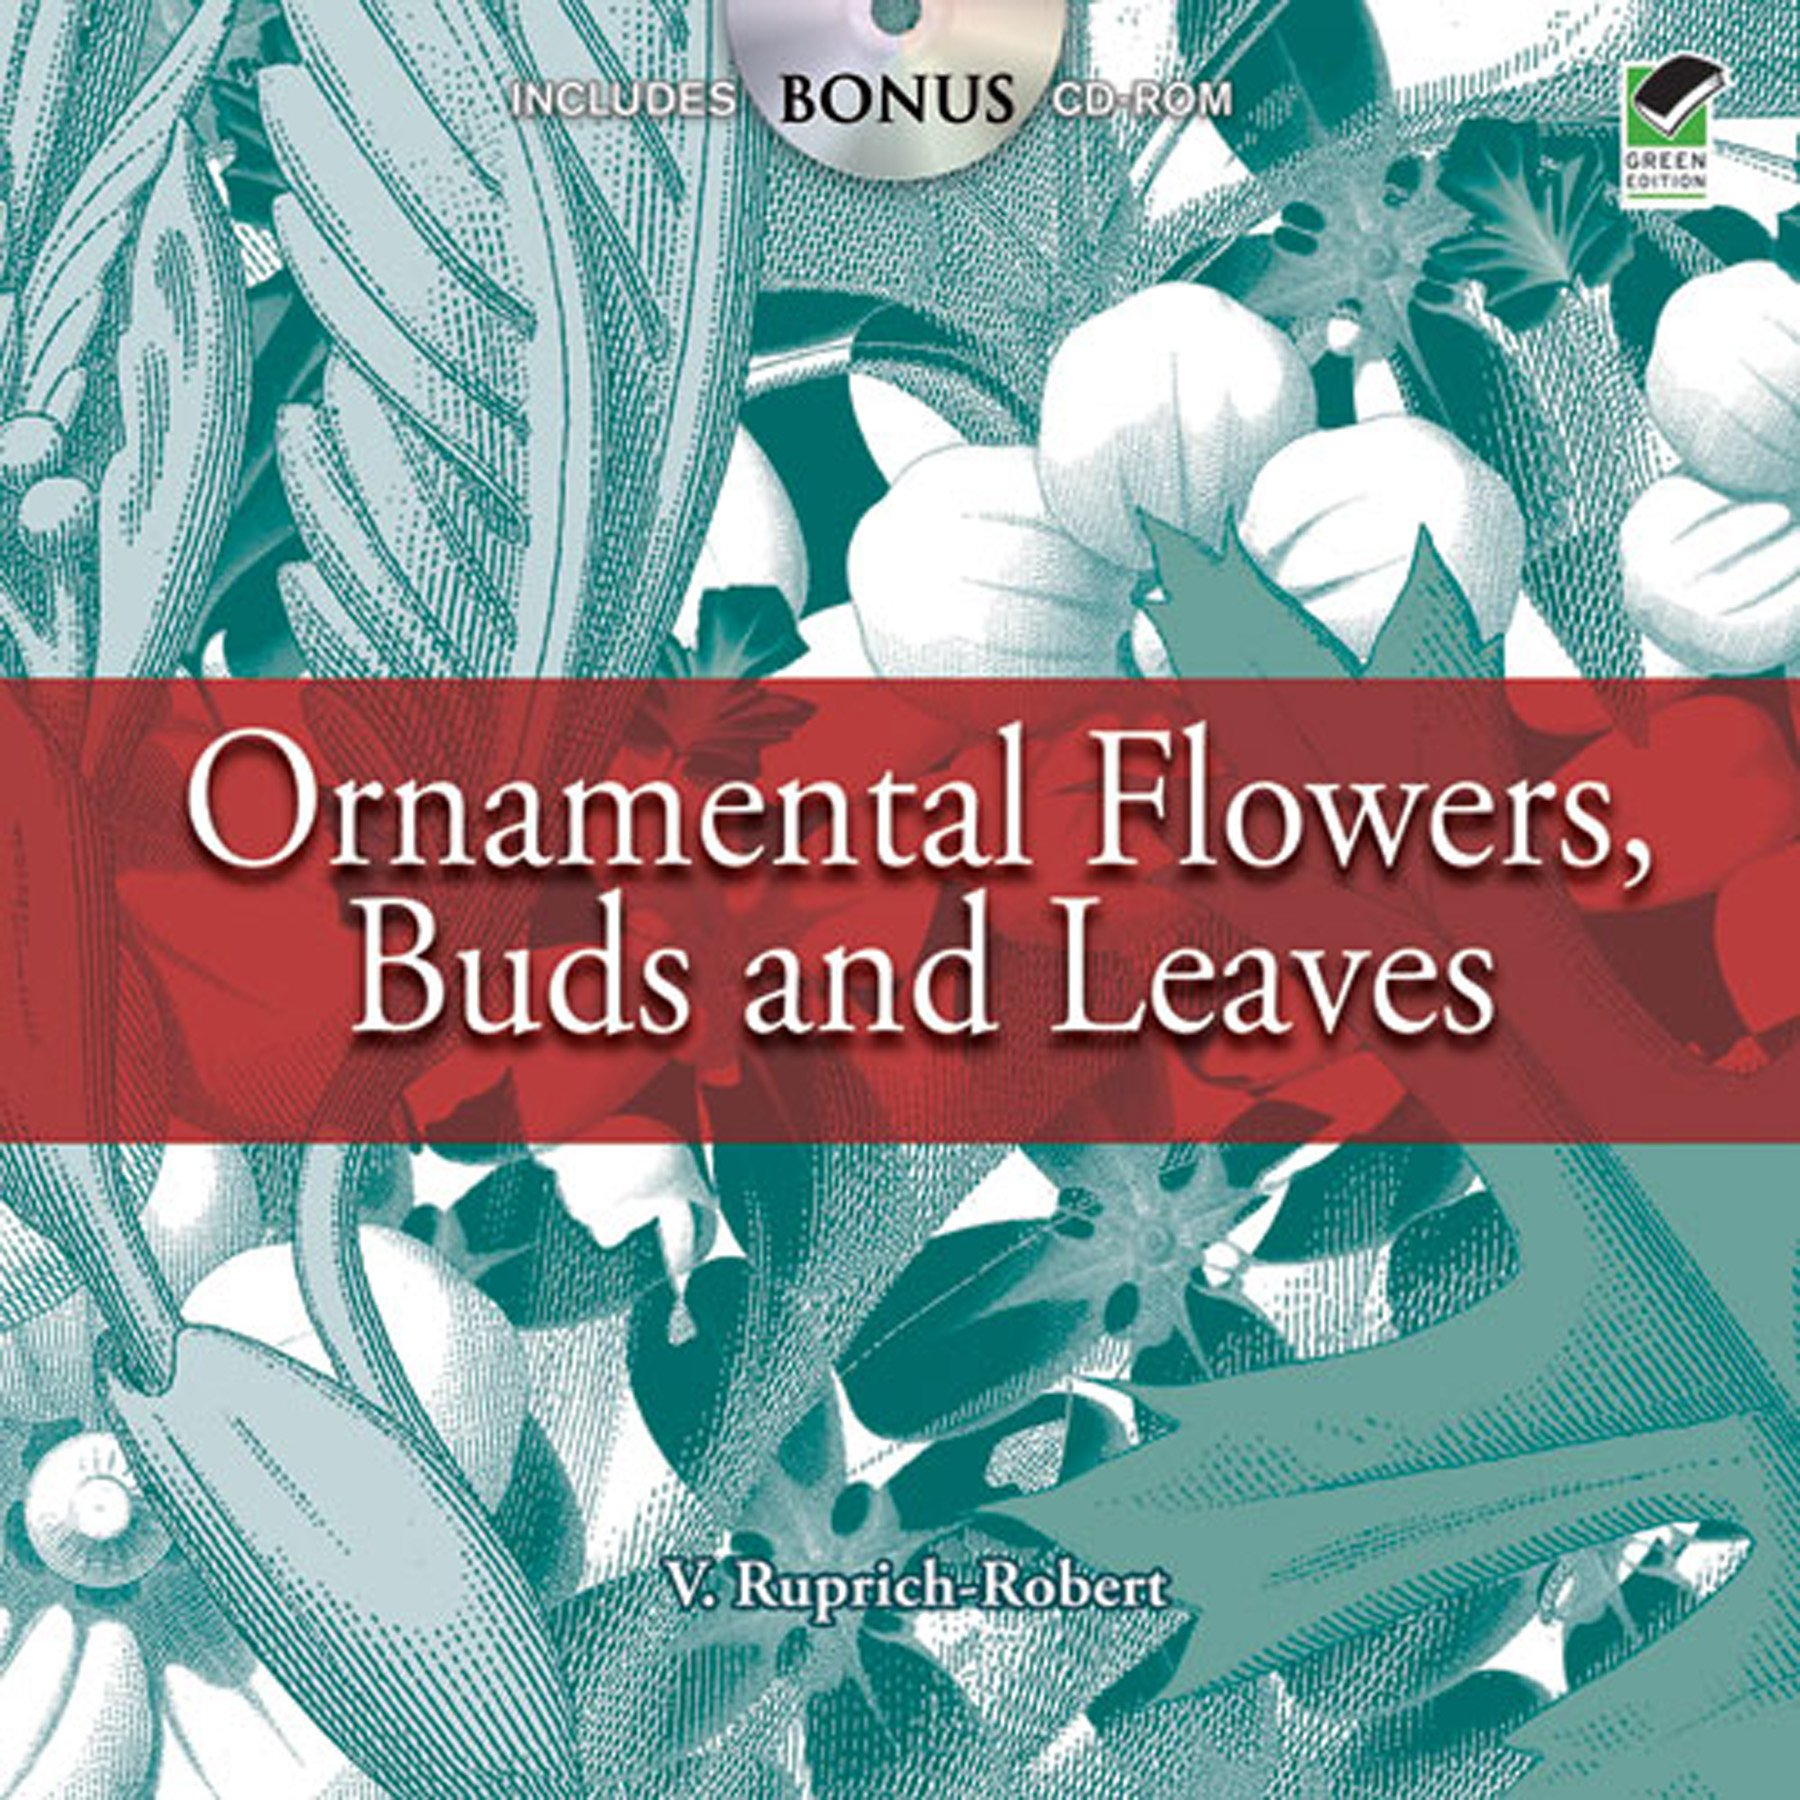 Ornamental Flowers, Buds and Leaves: Includes CD-ROM (Dover Pictorial Archive)